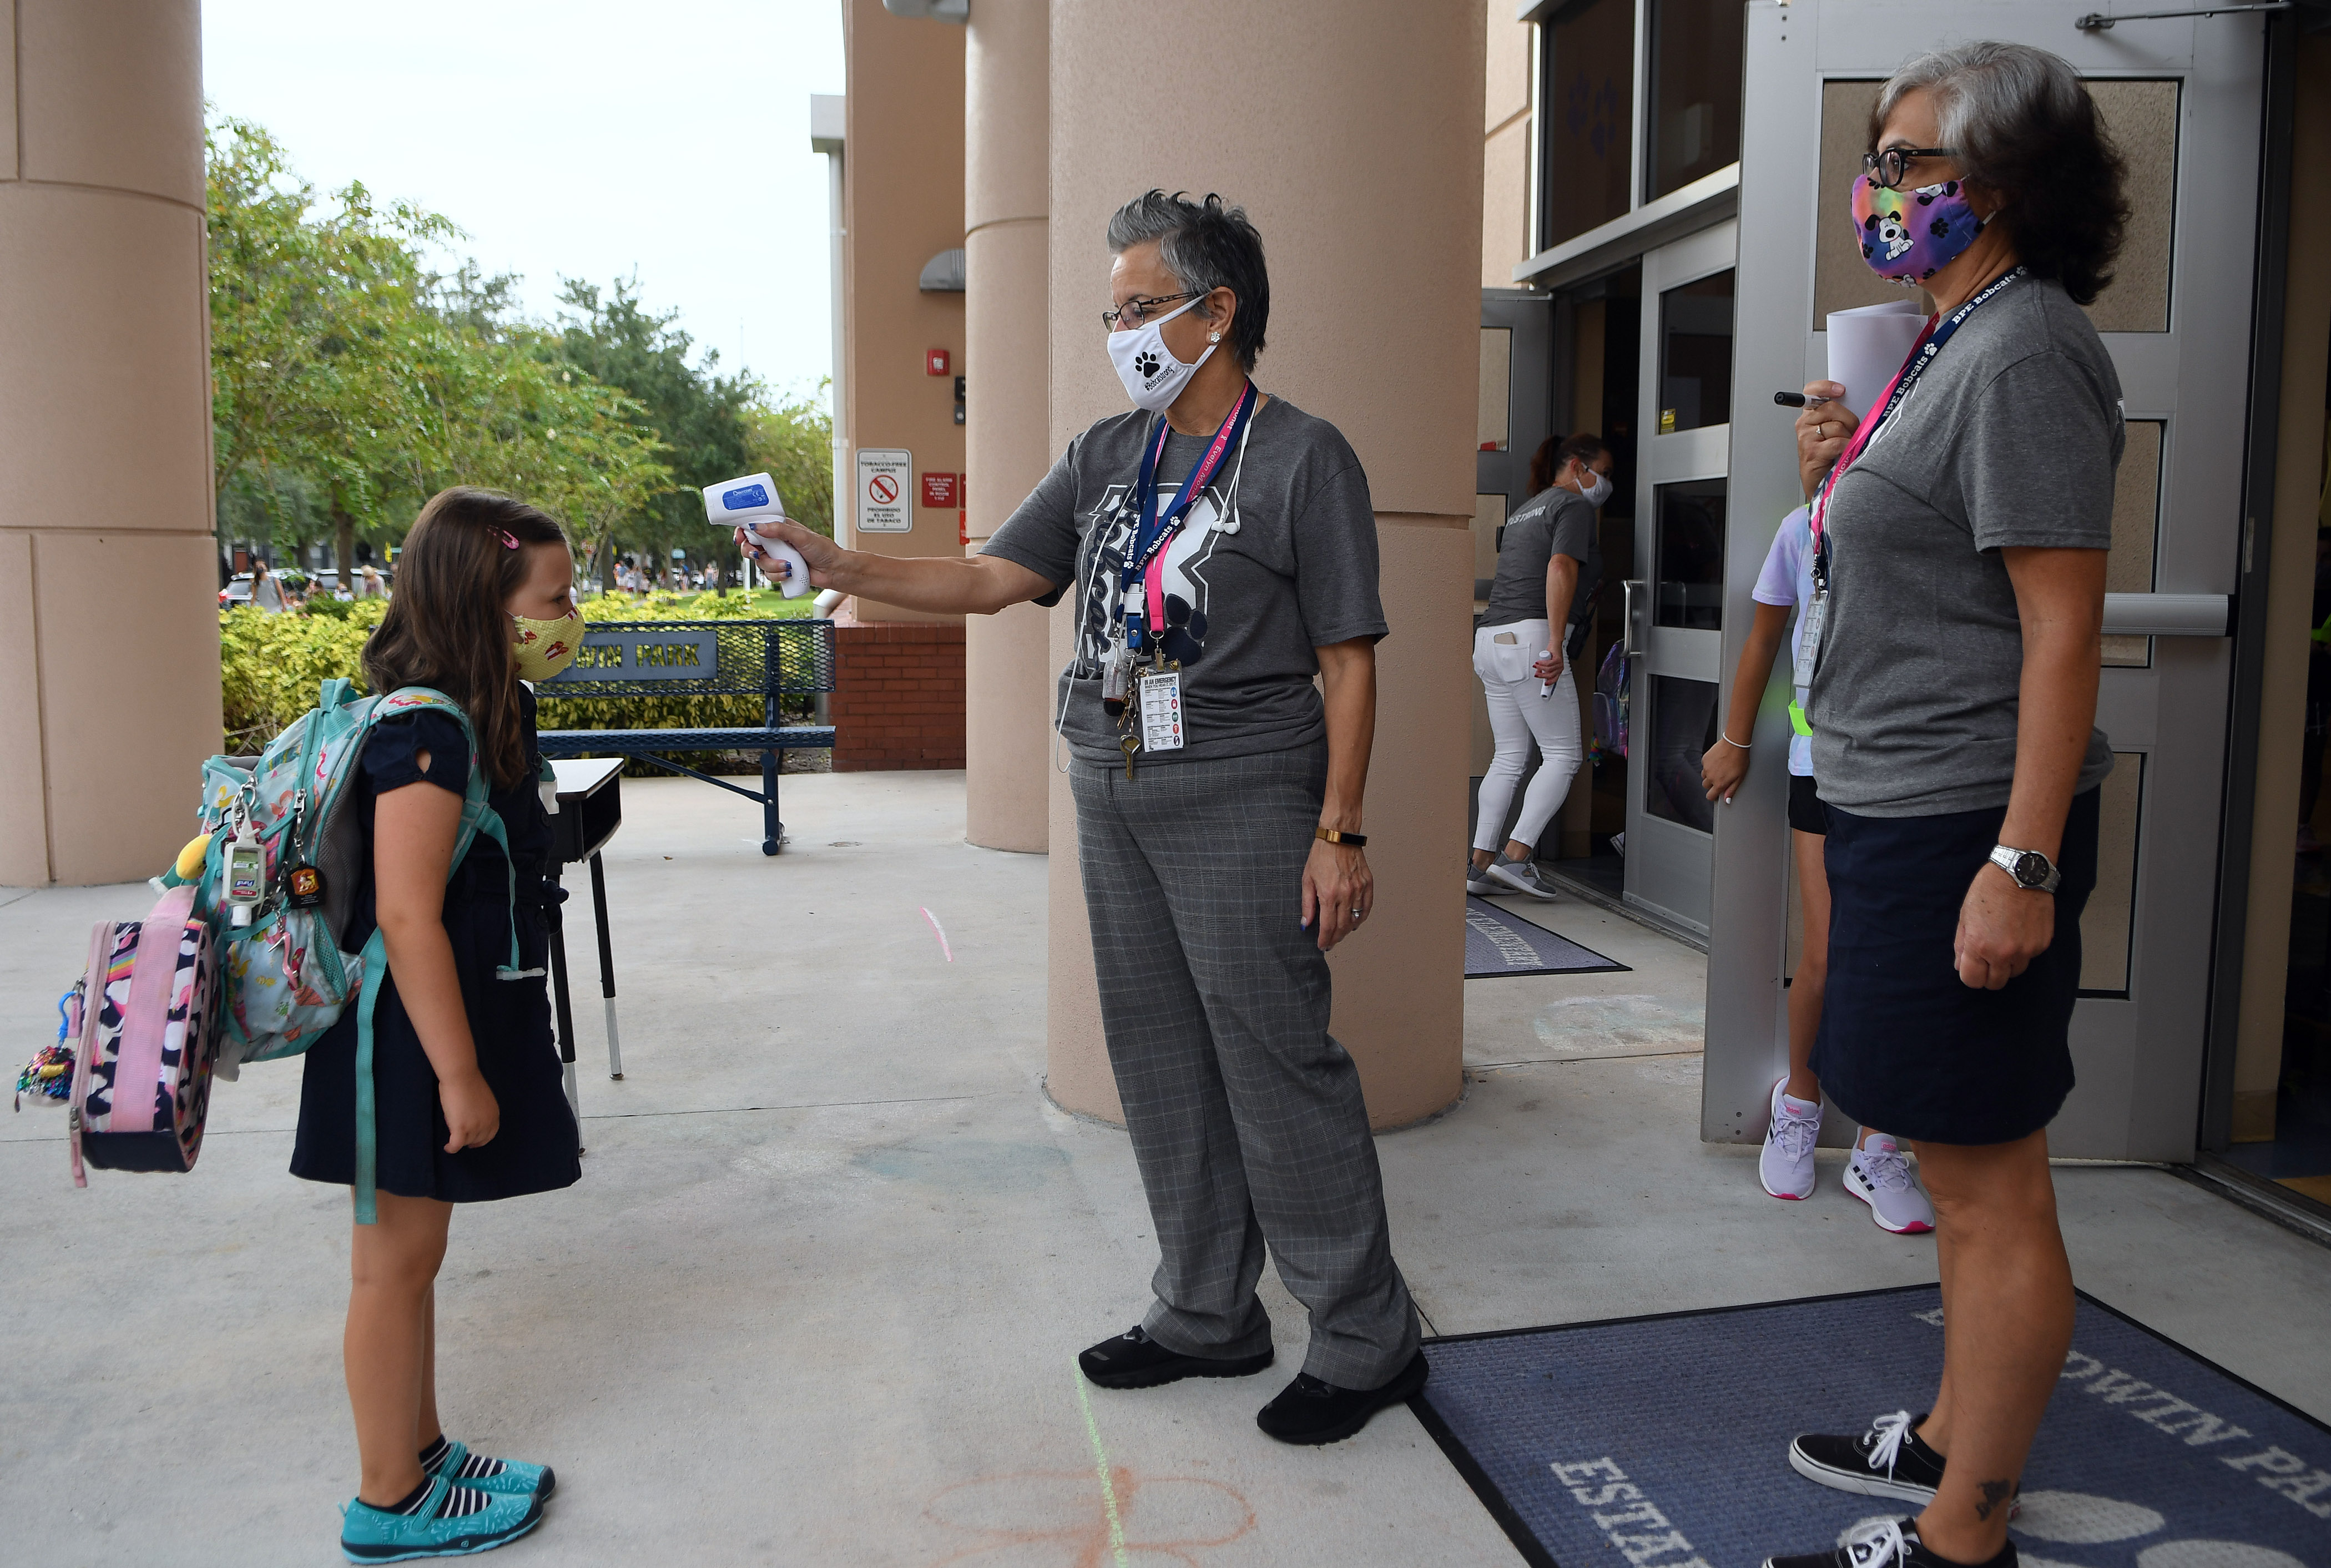 Florida Students Exposed to COVID Can Attend School if Asymptomatic Under New Rule